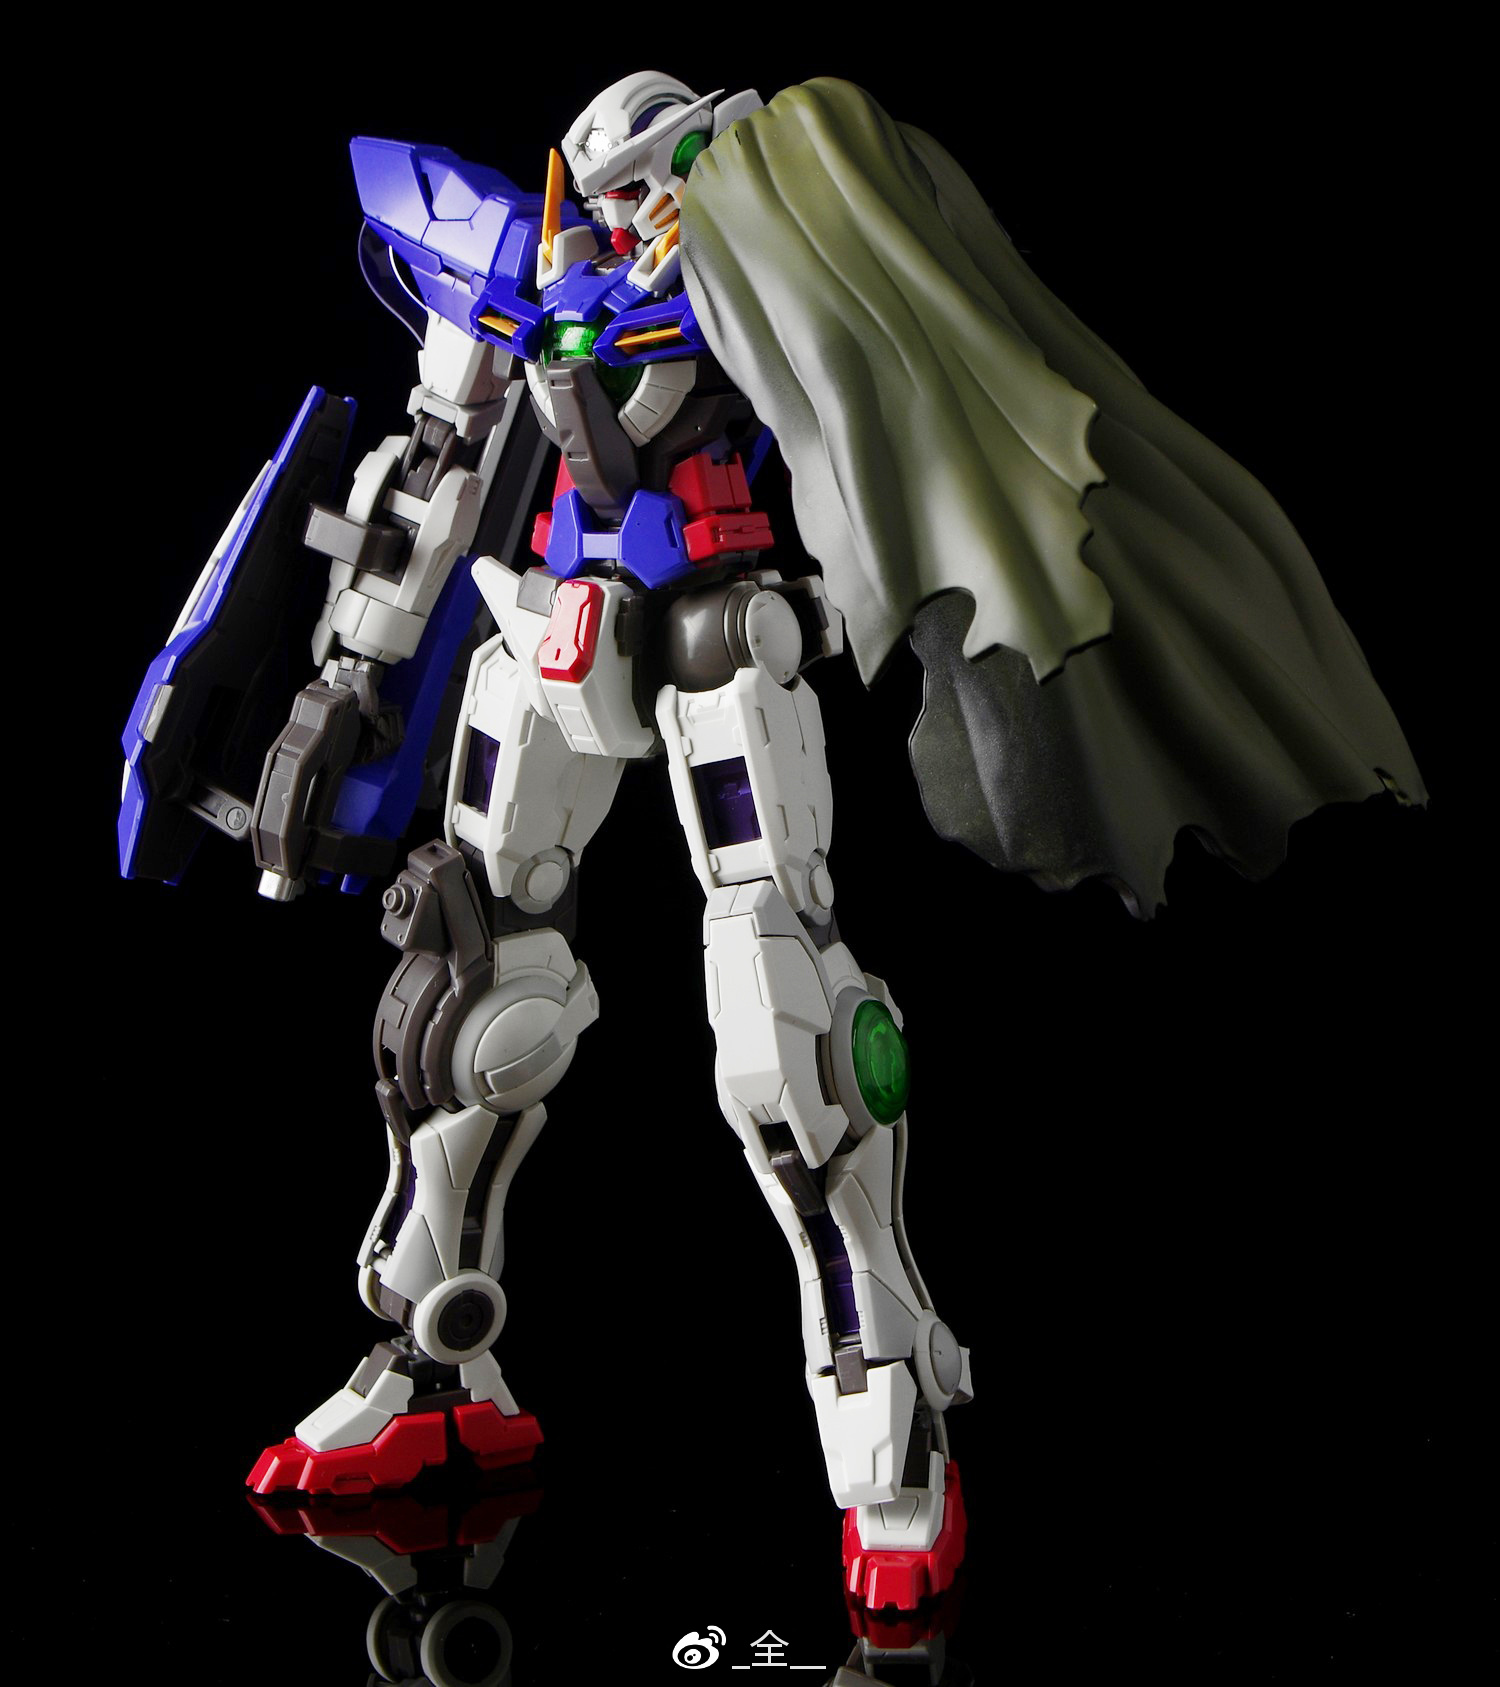 S269_mg_exia_led_hobby_star_inask_071.jpg